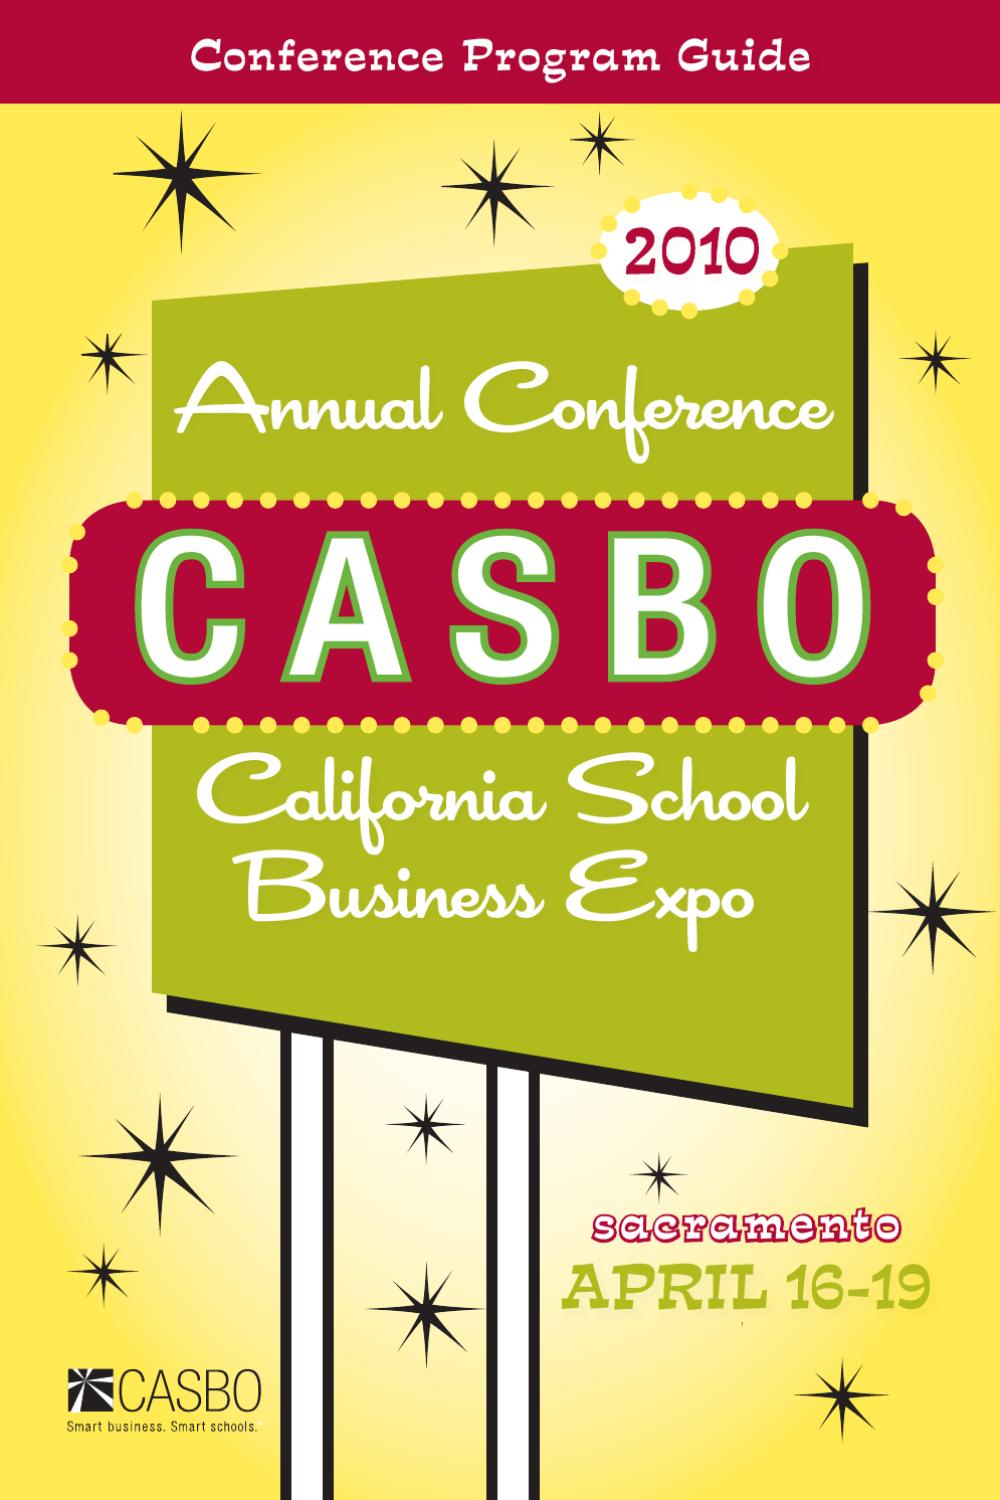 CASBO 2010 Onsite Conference Guide by Association Outsource Services